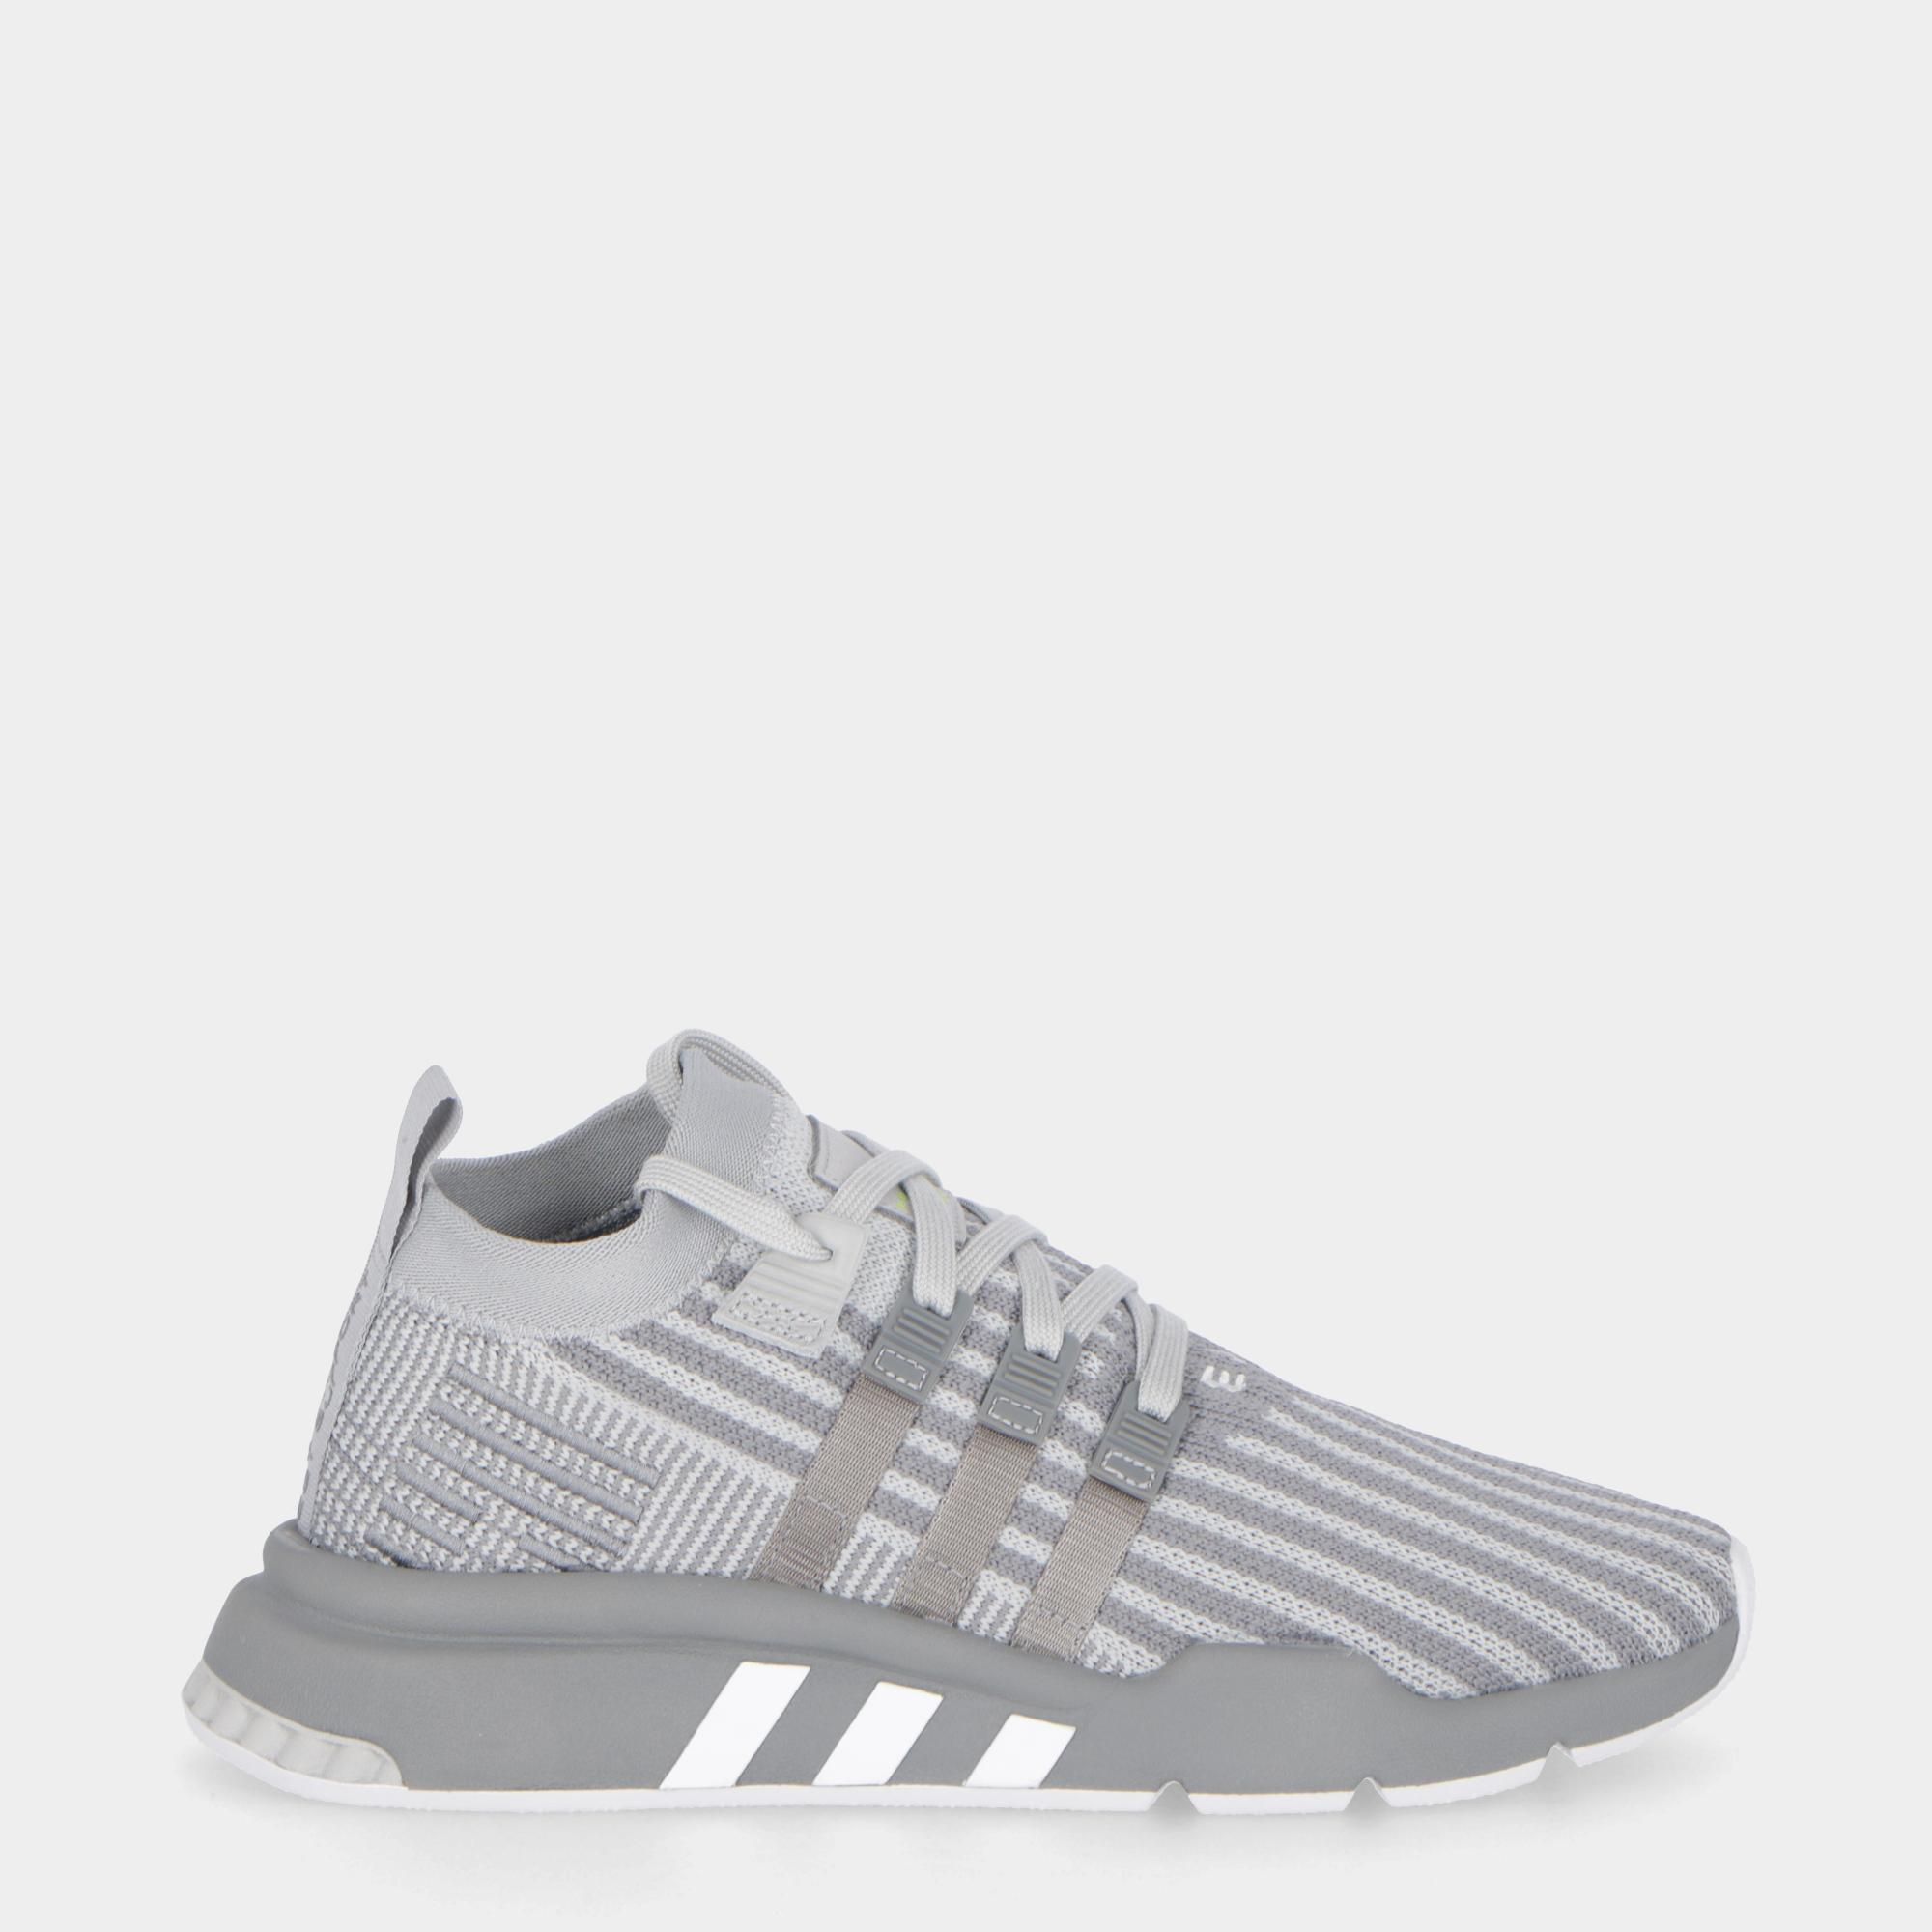 hot sales 37485 bfdfa ADIDAS EQT SUPPORT MID ADV